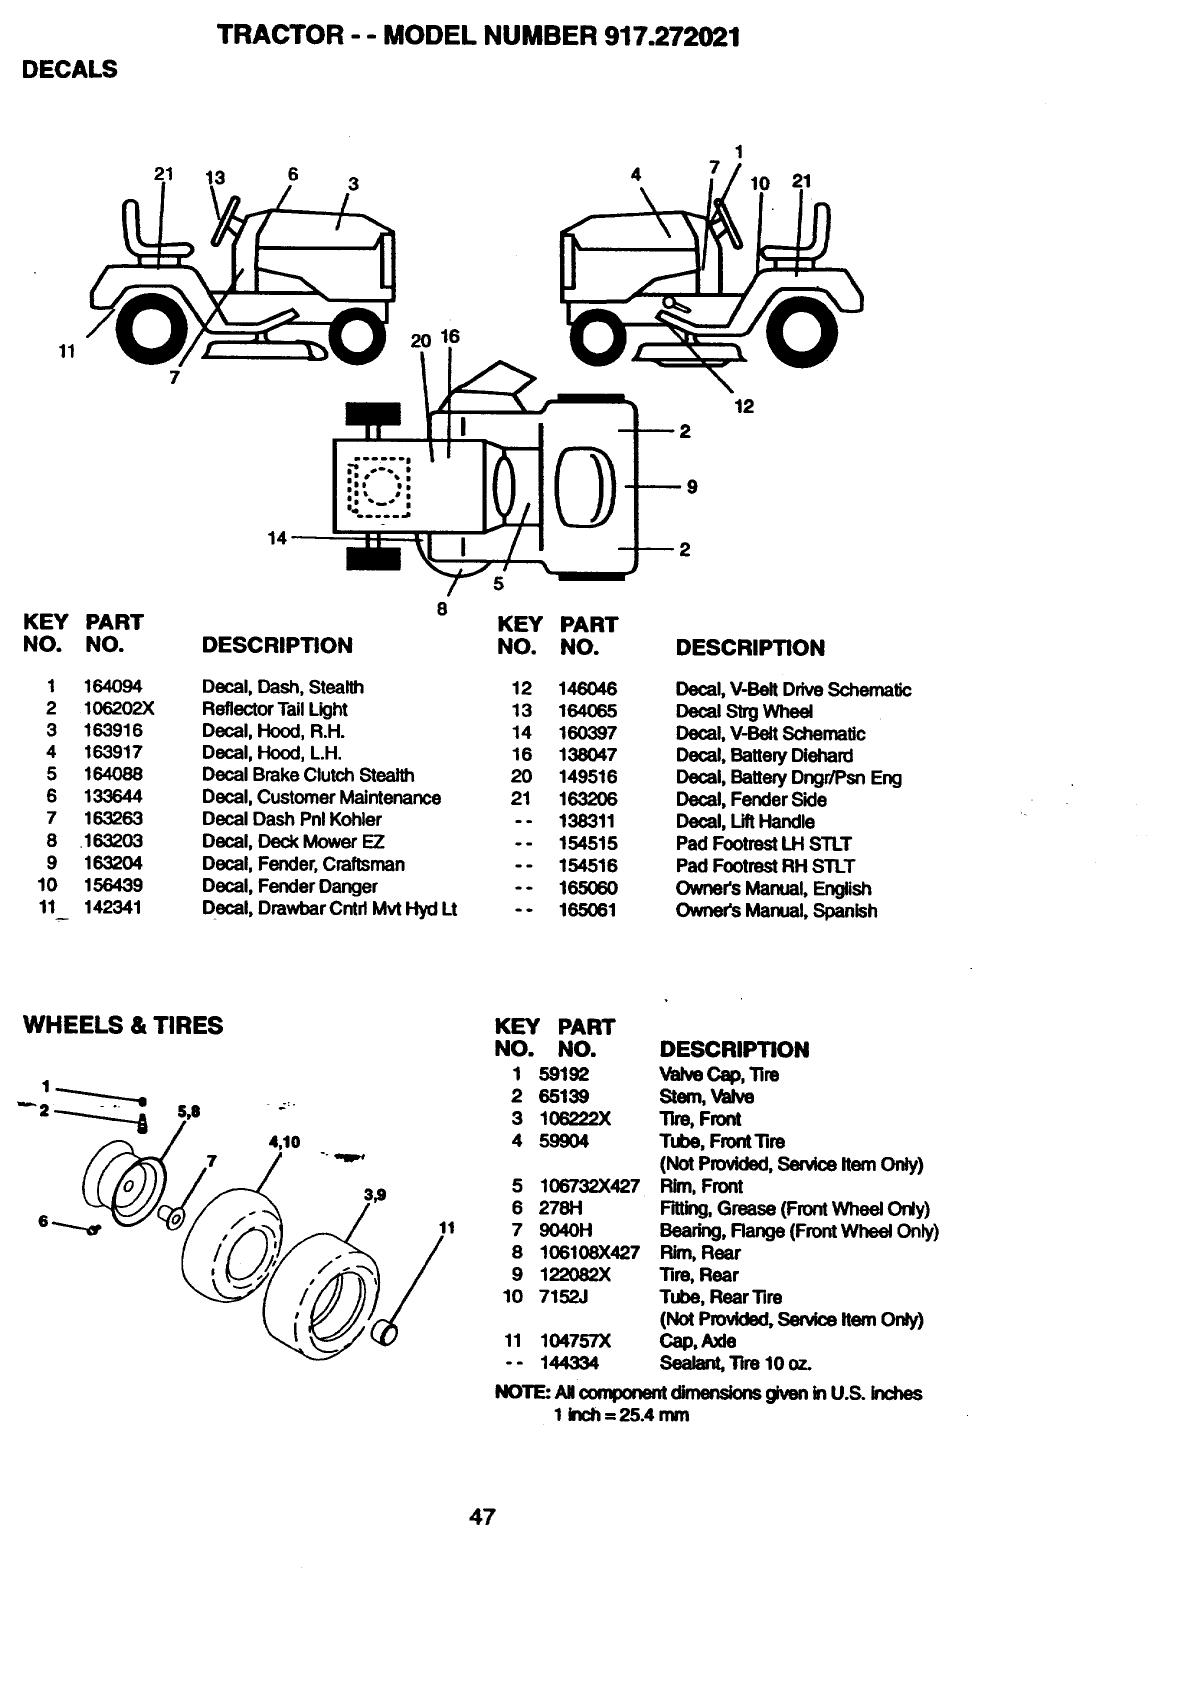 Craftsman 917272021 User Manual LAWN TRACTOR Manuals And